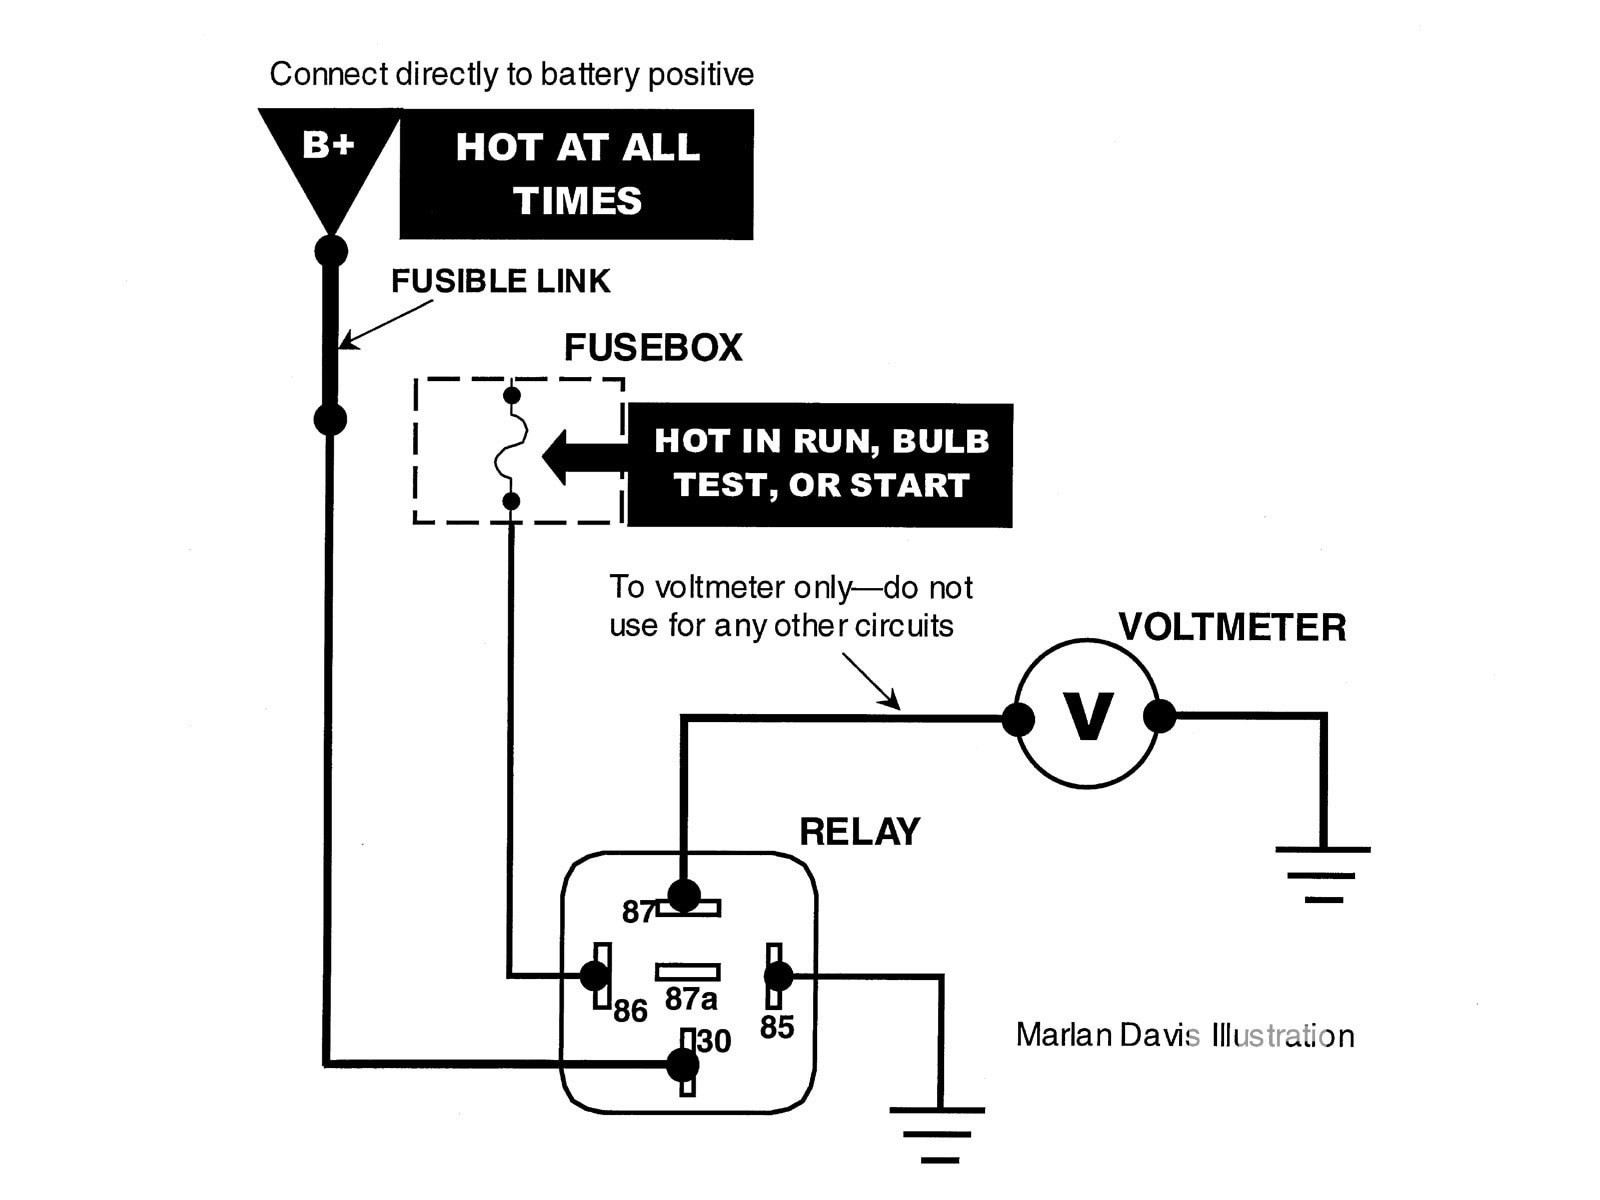 elec fan wiring diagram catv system how to wire cooling fans headlights fuel pumps